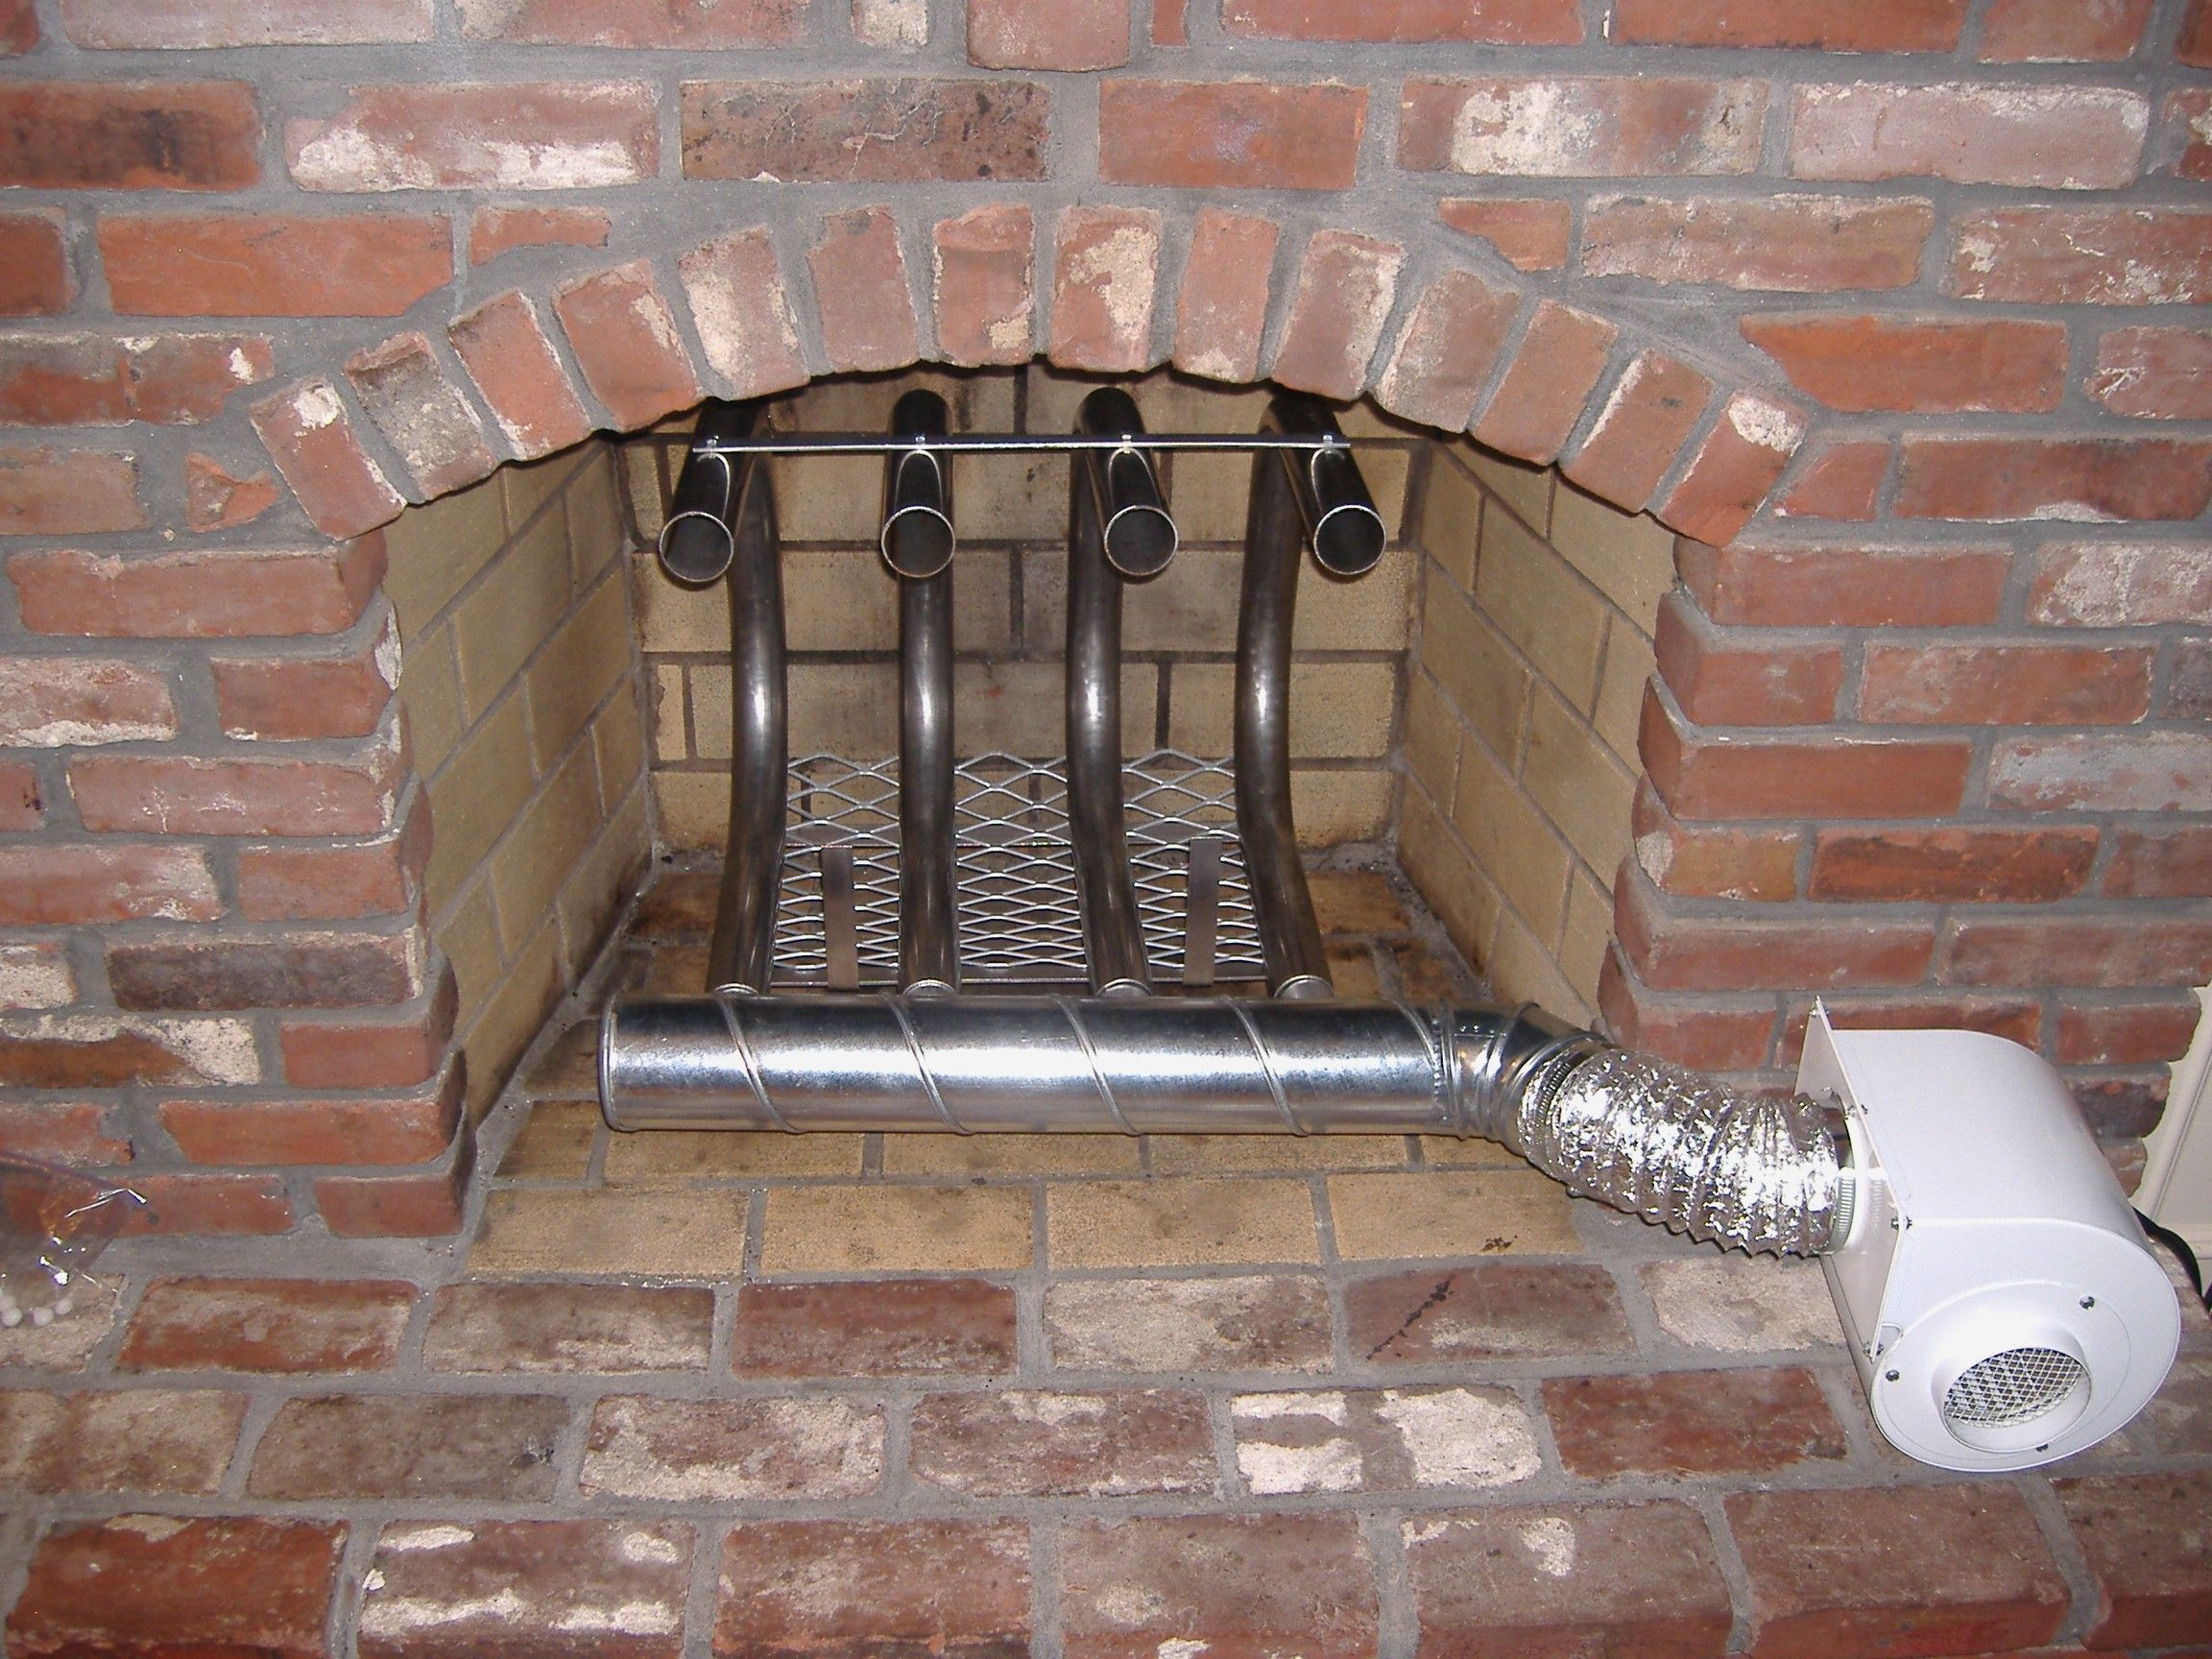 holz kamin f r kamin kamin diy and projects fireplace blower fireplace grate stove fireplace